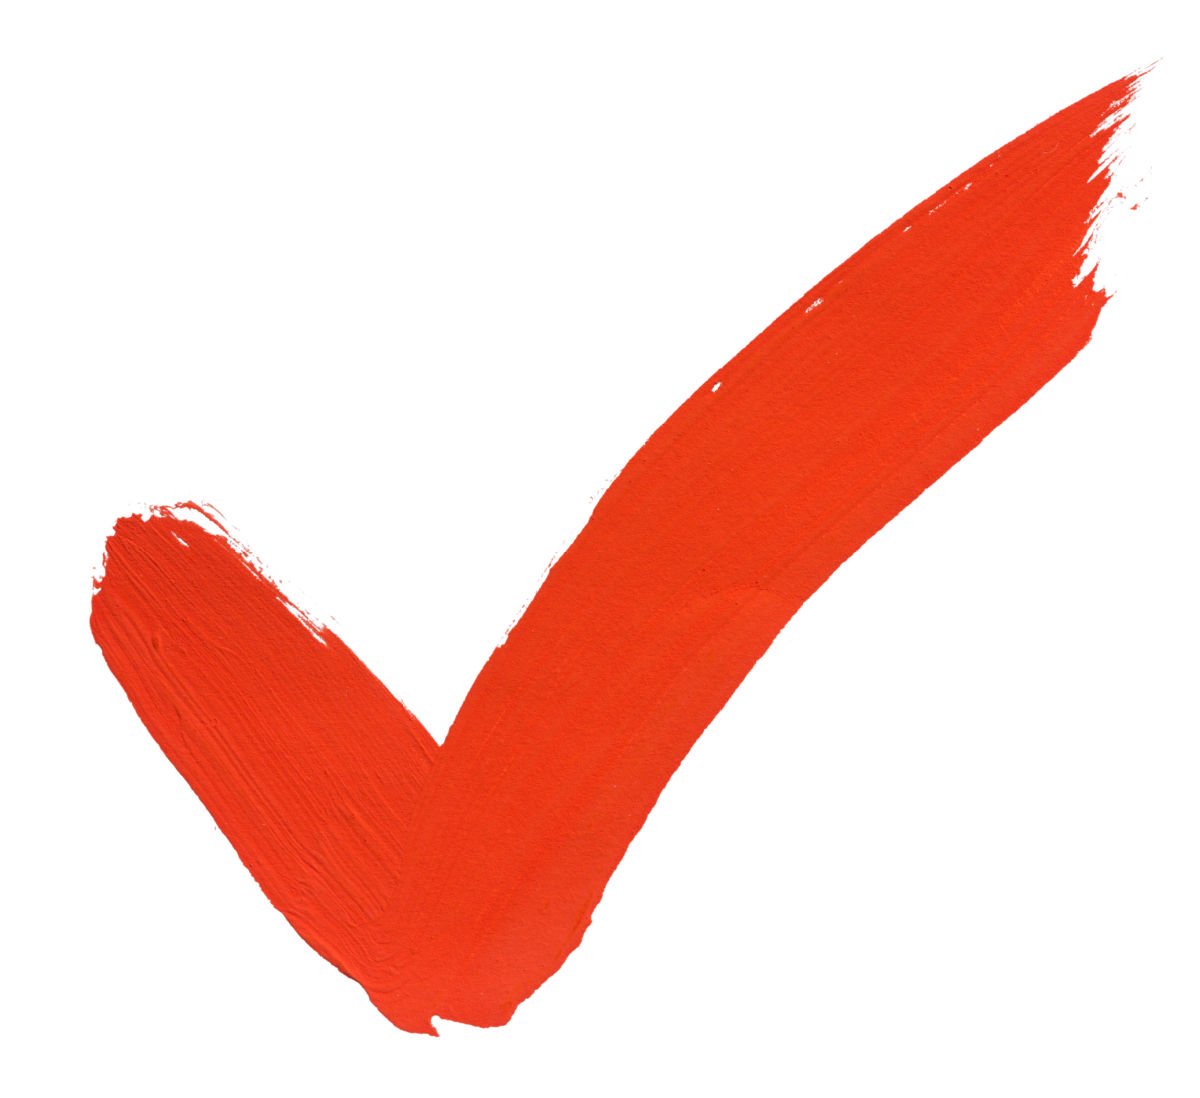 Red painted checkmark on white background